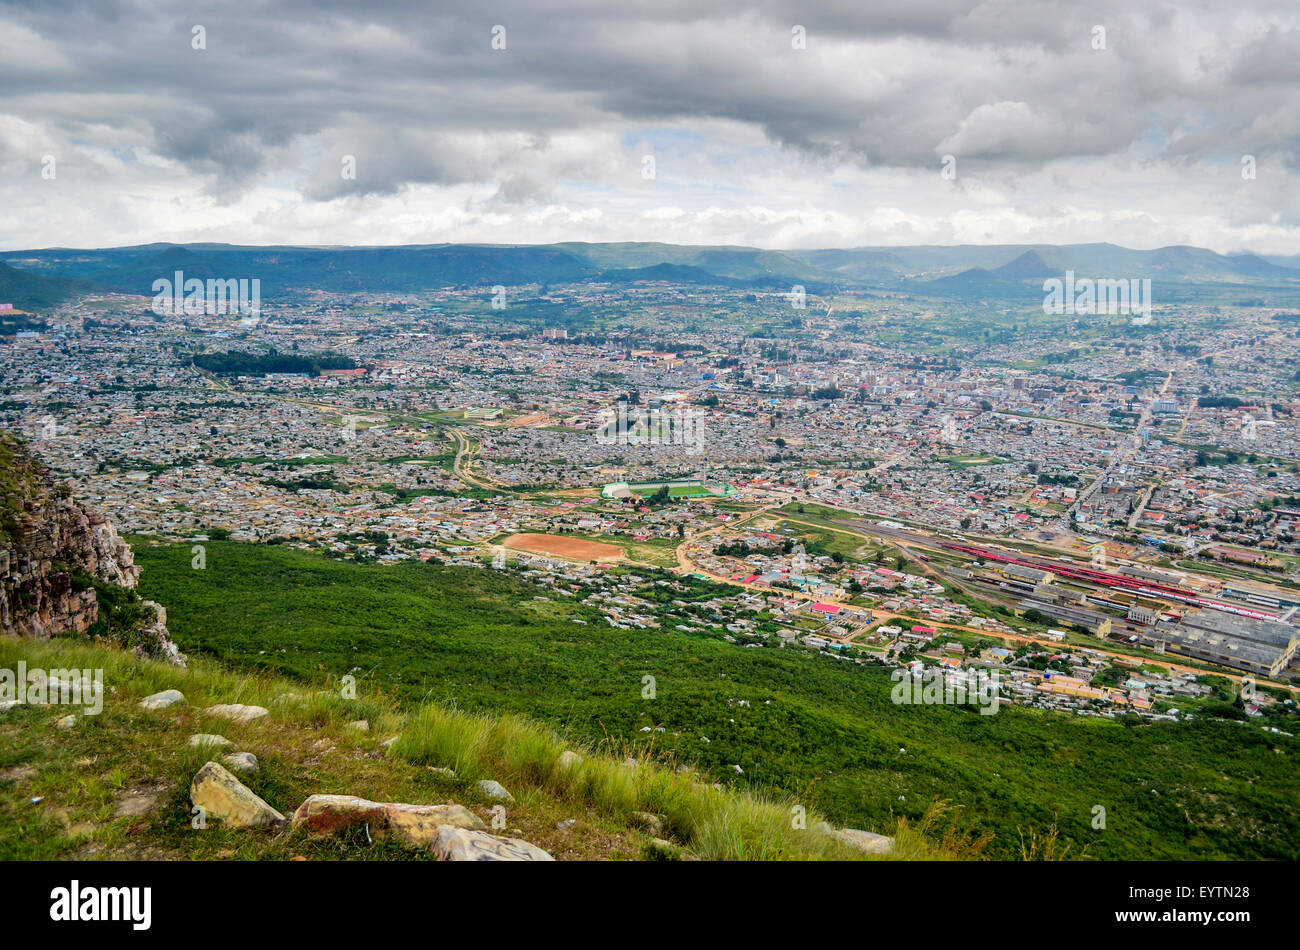 Aerial view of the city of Lubango, Angola - Stock Image